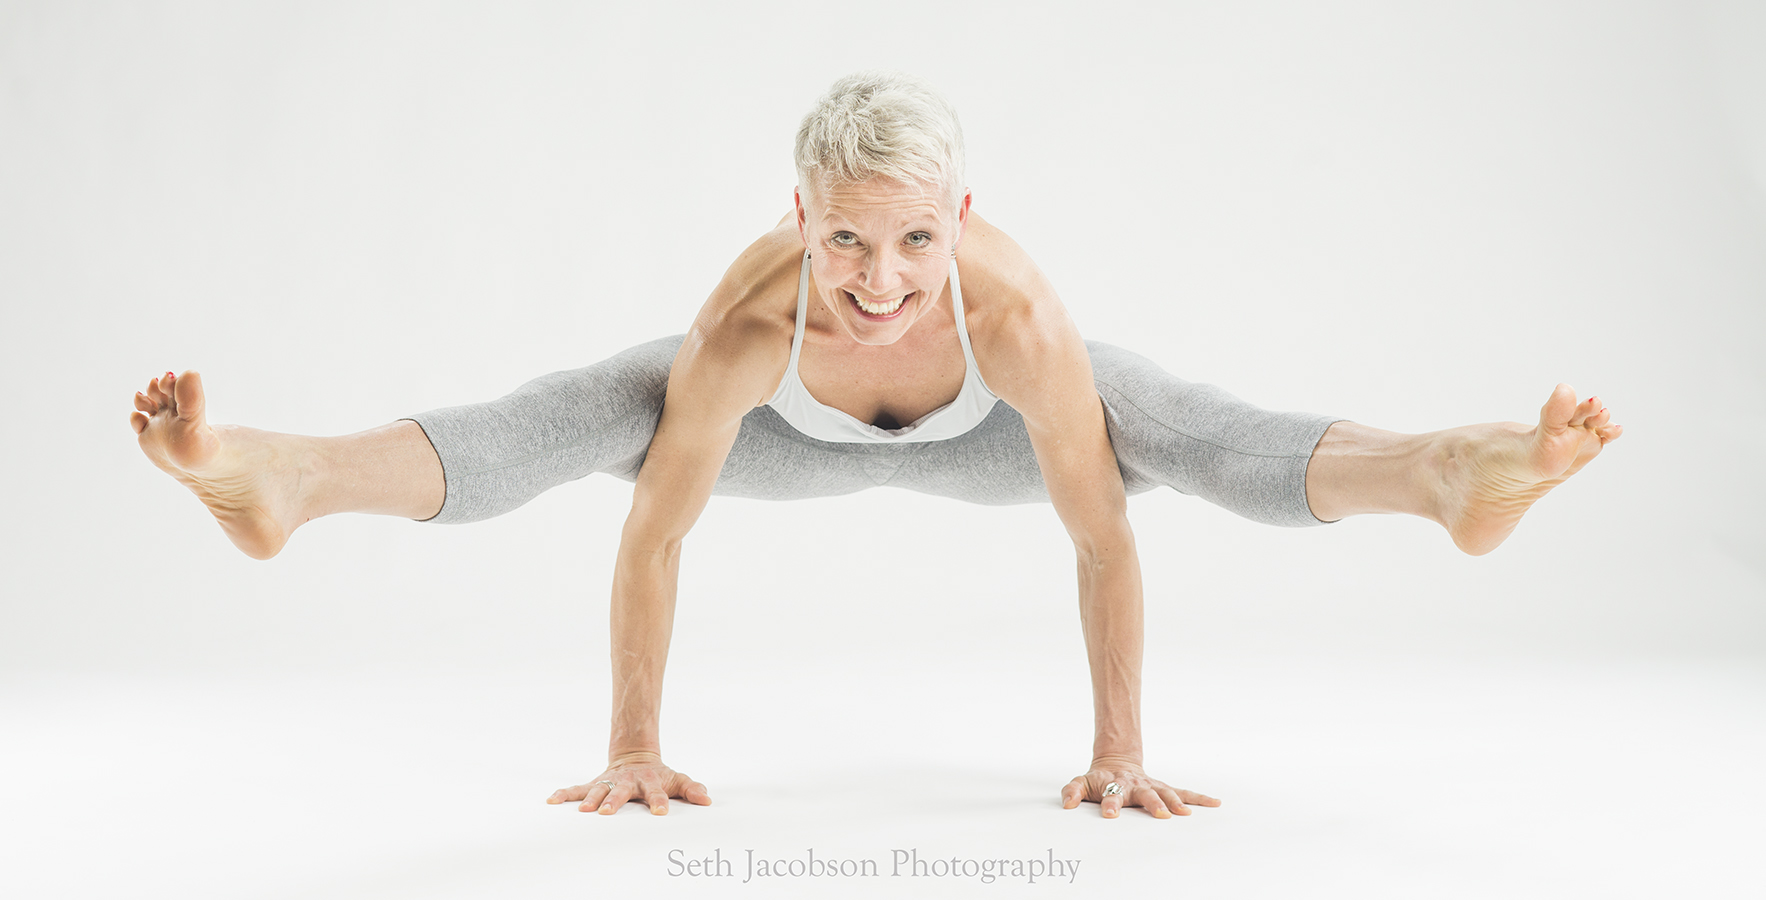 Beautiful Yoga portrait by Seth Jacobson Photography